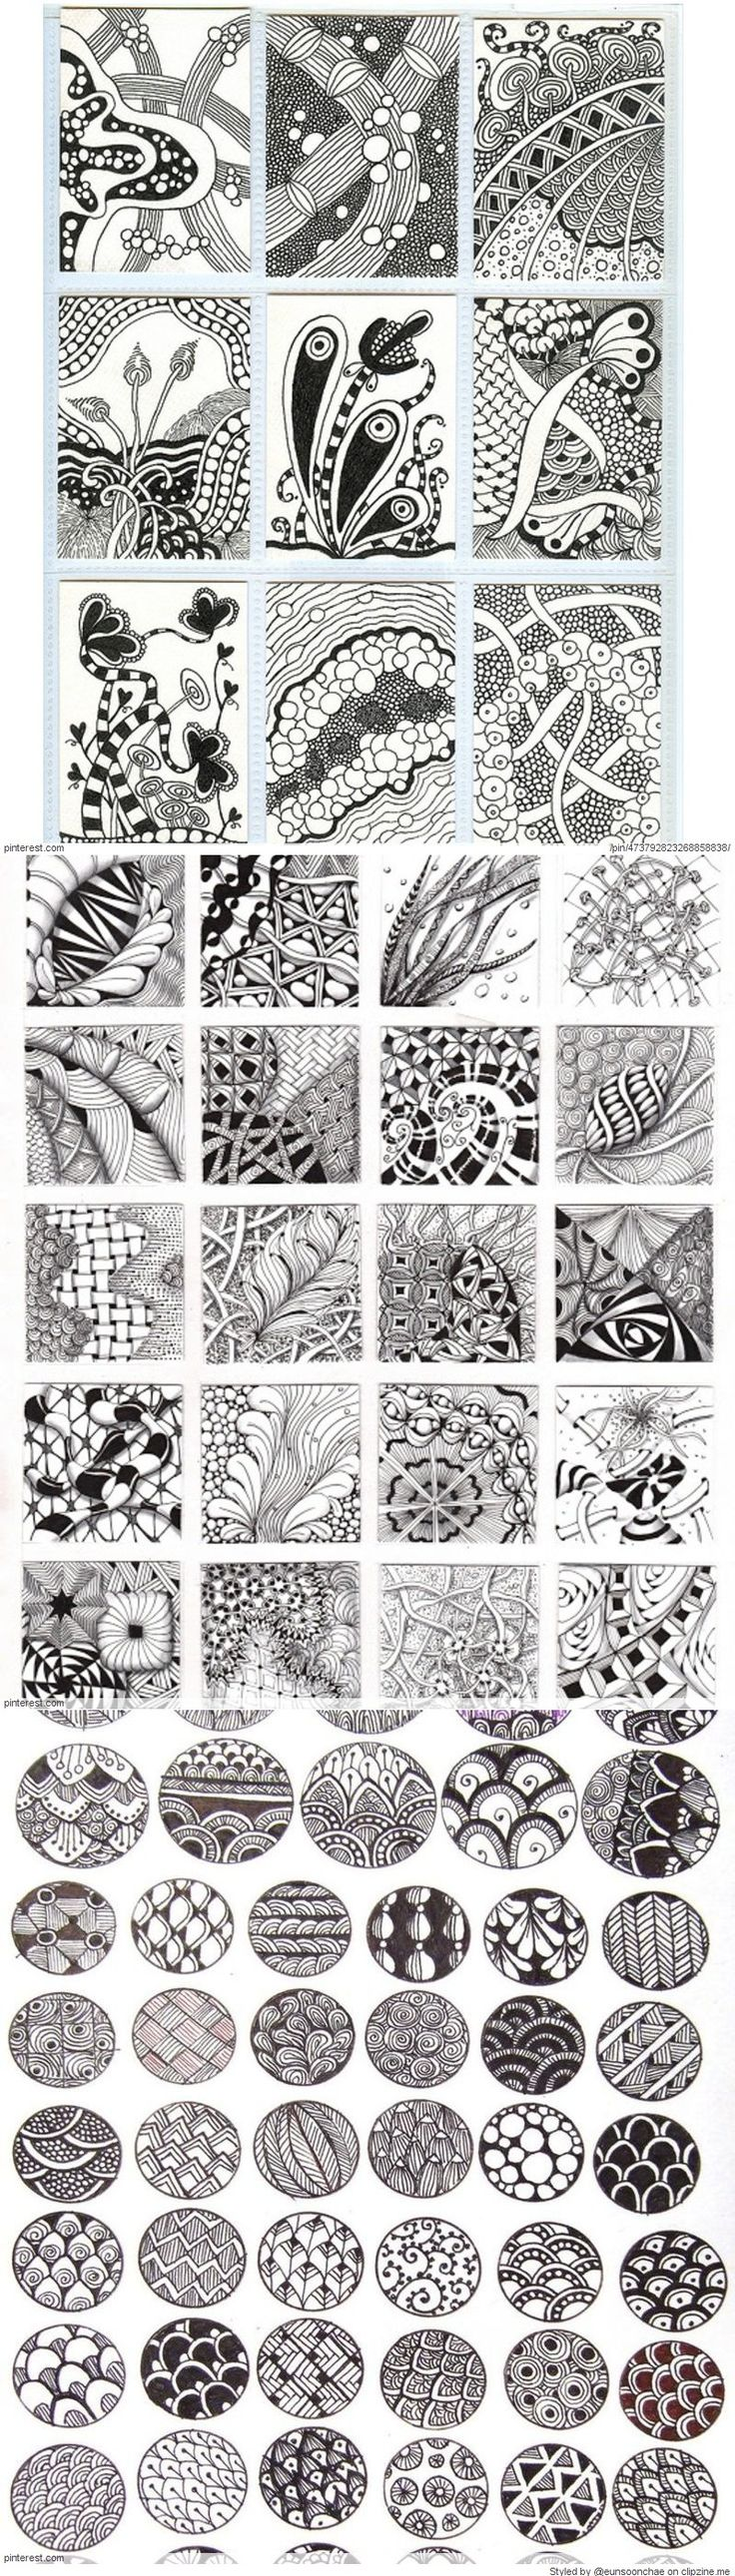 careful BEYOND done BELIEF   sale Ideas jewelry meaningless Zentangle Zentangle badly    amp  it doodles looks like for silver NAFF be Patterns is